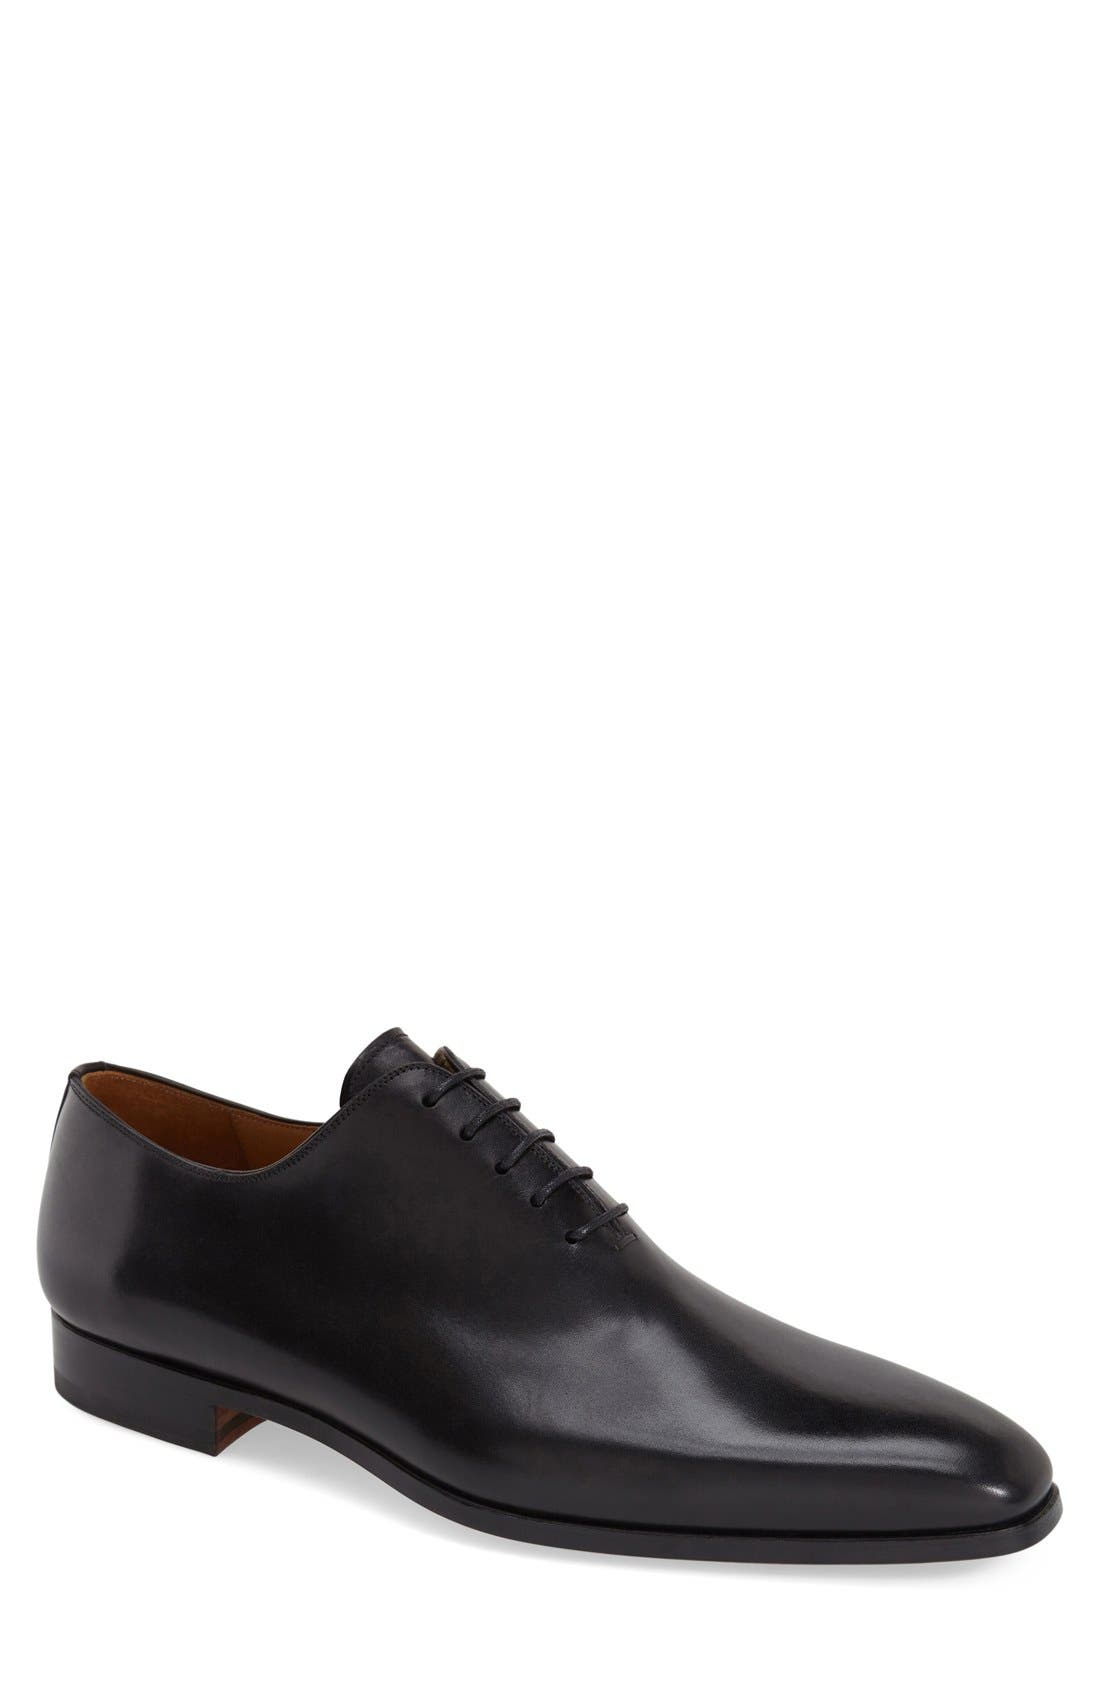 'Cruz' Plain Toe Oxford, Main, color, BLACK